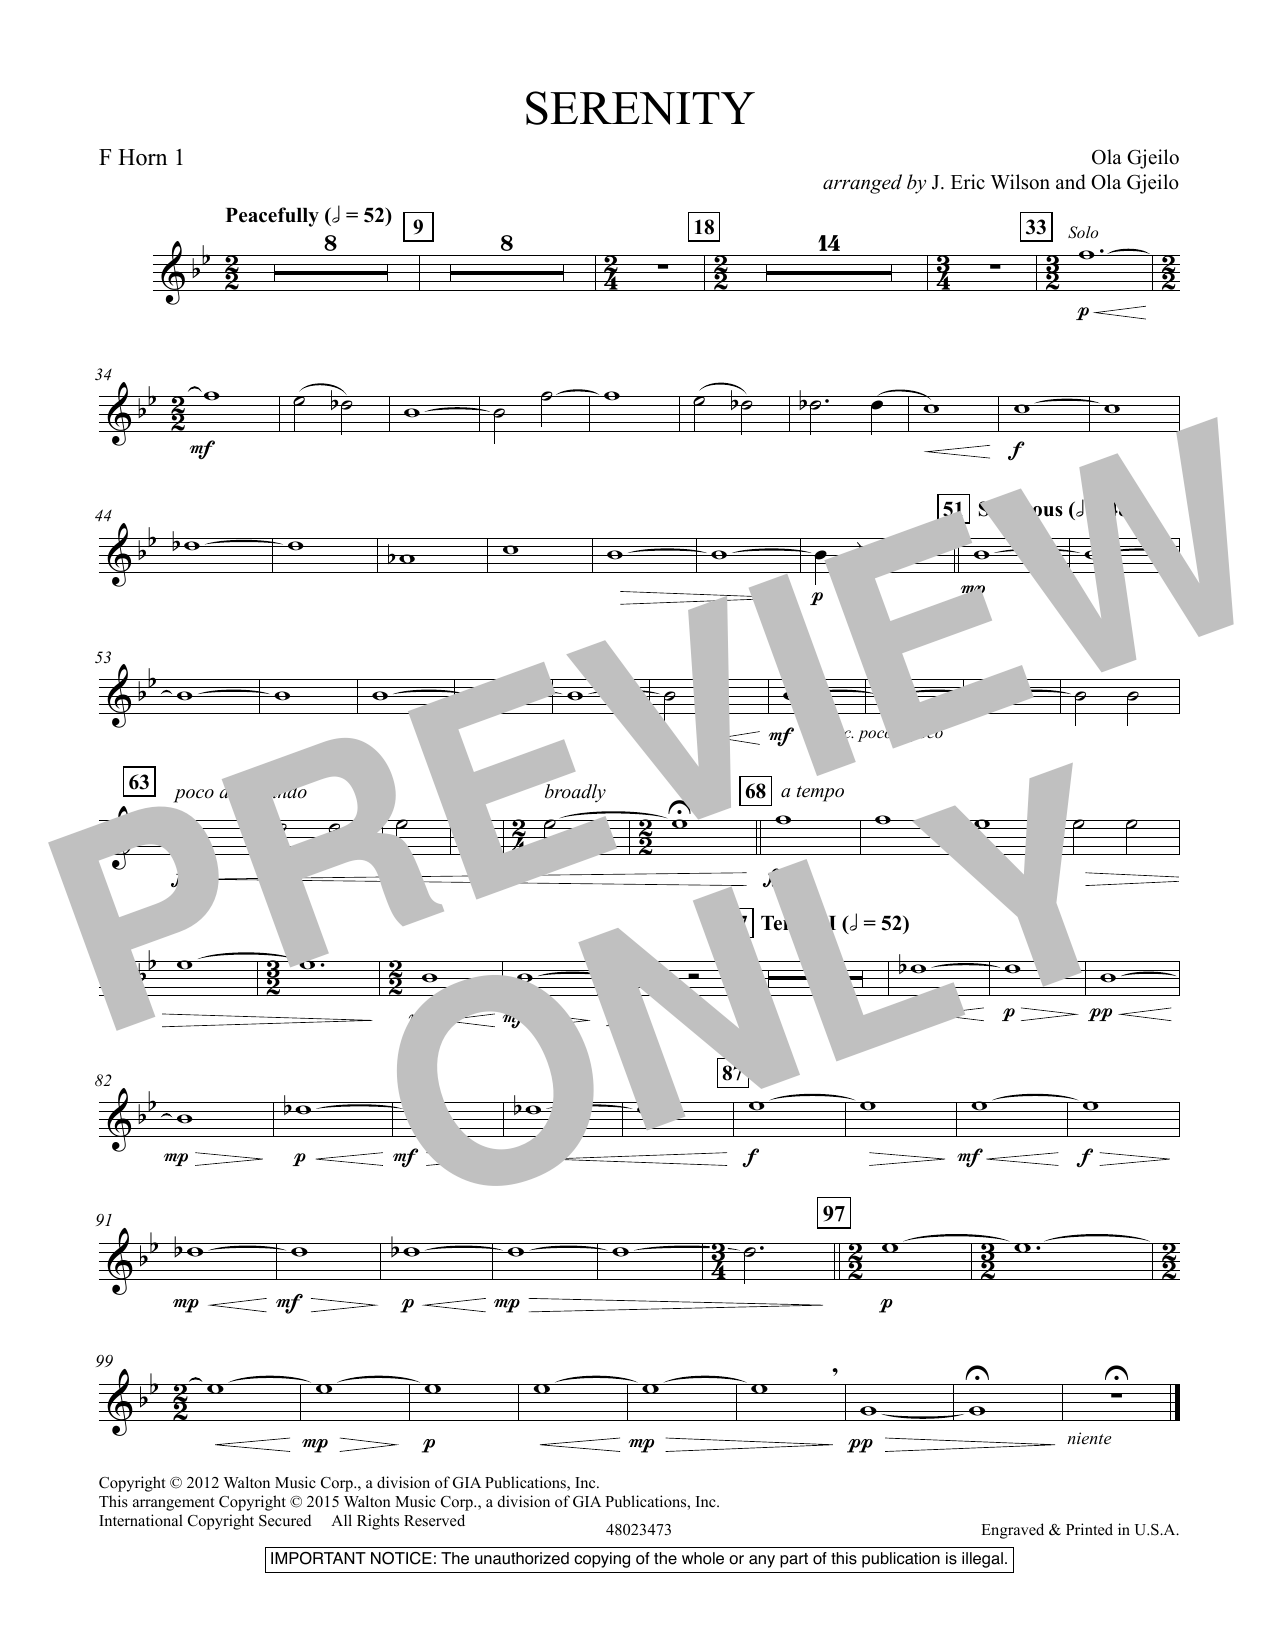 Serenity - F Horn 1 (Concert Band)